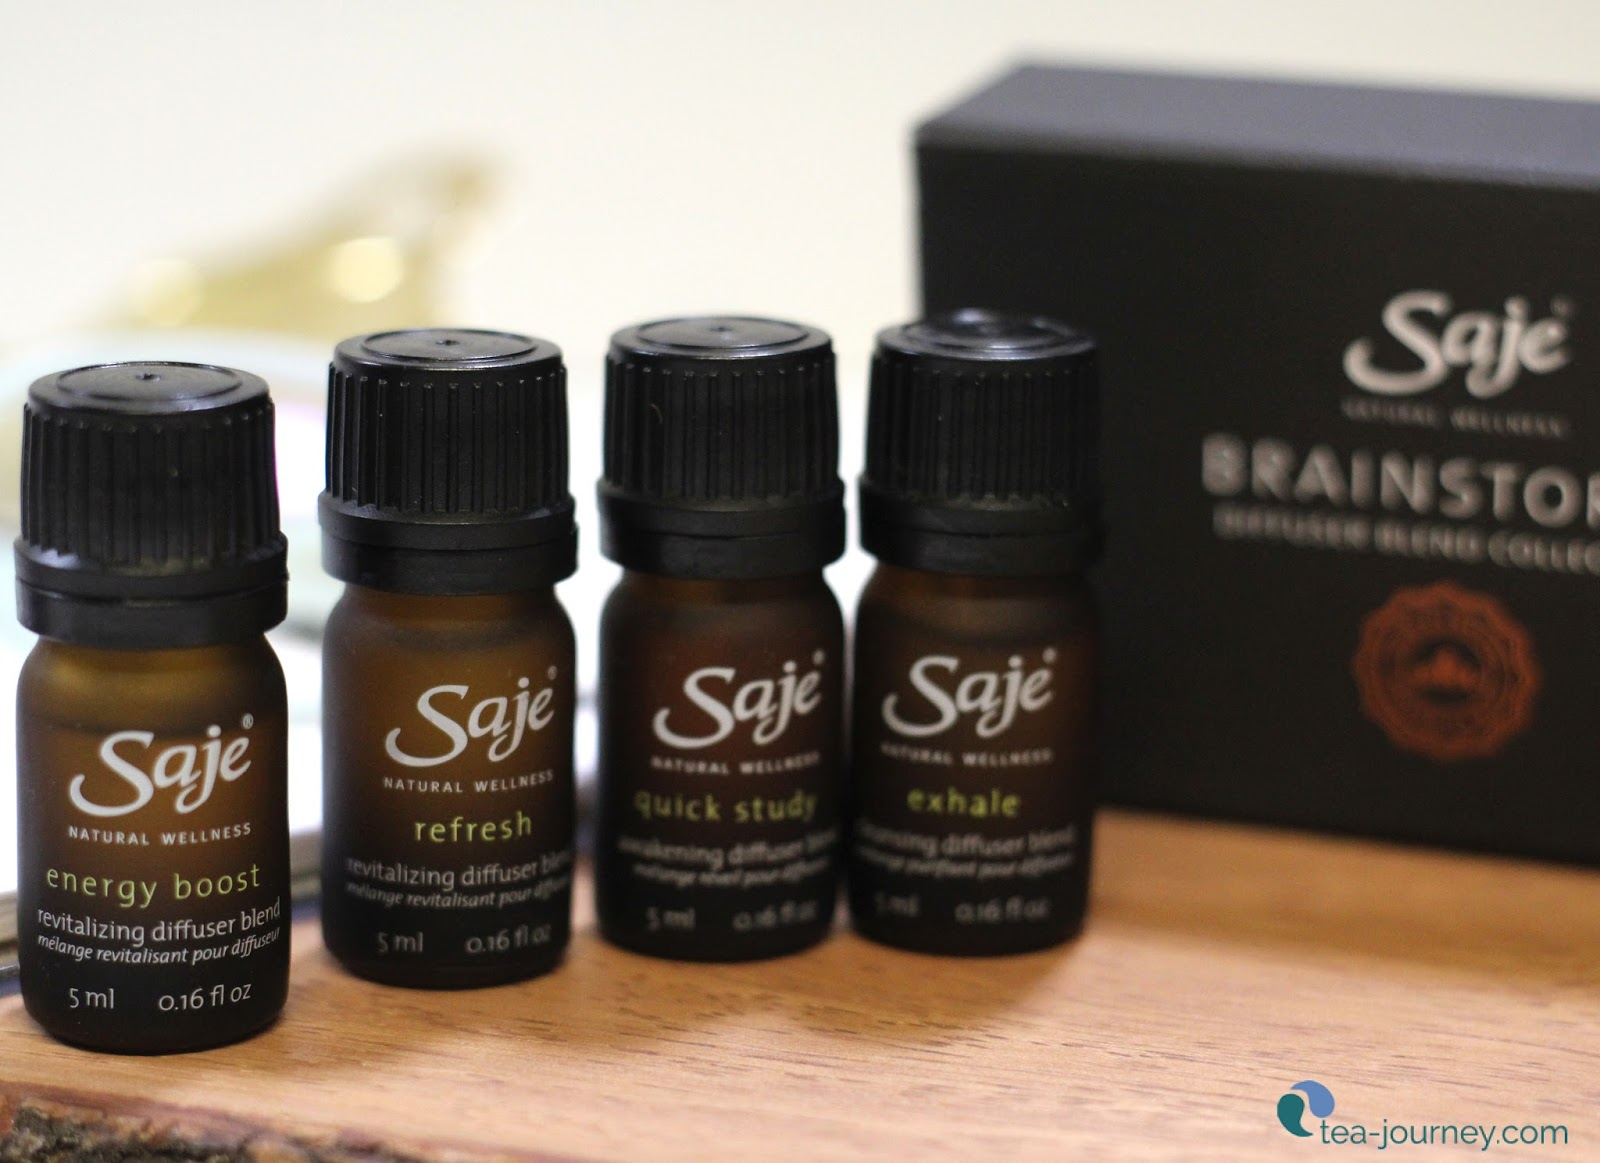 Saje is a Canadian wellness company which has made life much more productive. This selection of their oils is what has helped me not only stay healthy but be more productive in all parts of life.